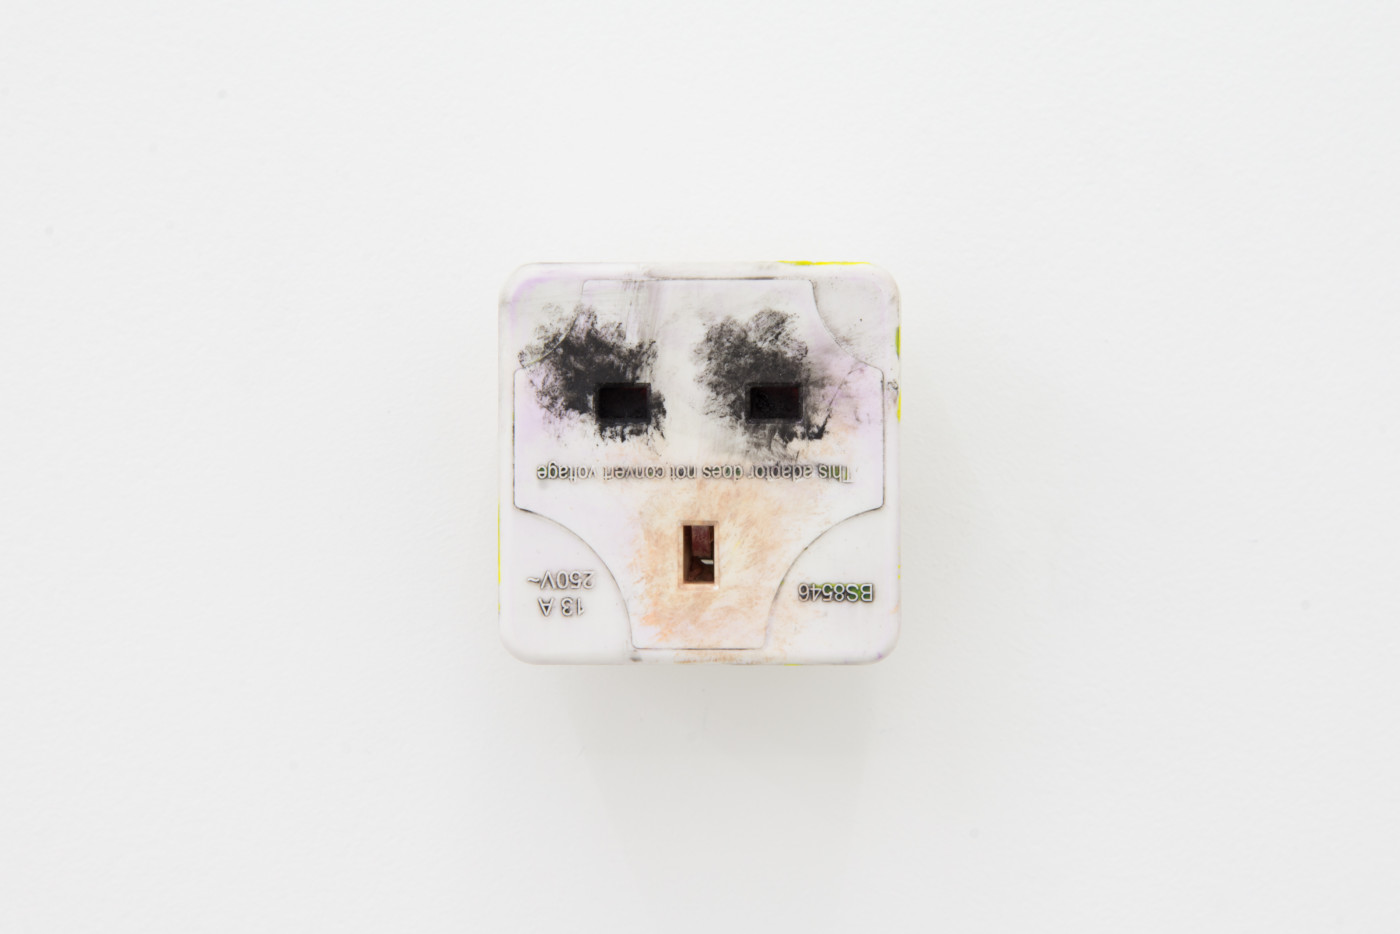 KEITH FARQUHAR  Scream #1</I>, 2019 Oil on travel adaptor 6 x 6 x 4,6 cm / 2.3 x 2.3 x 1.8 in